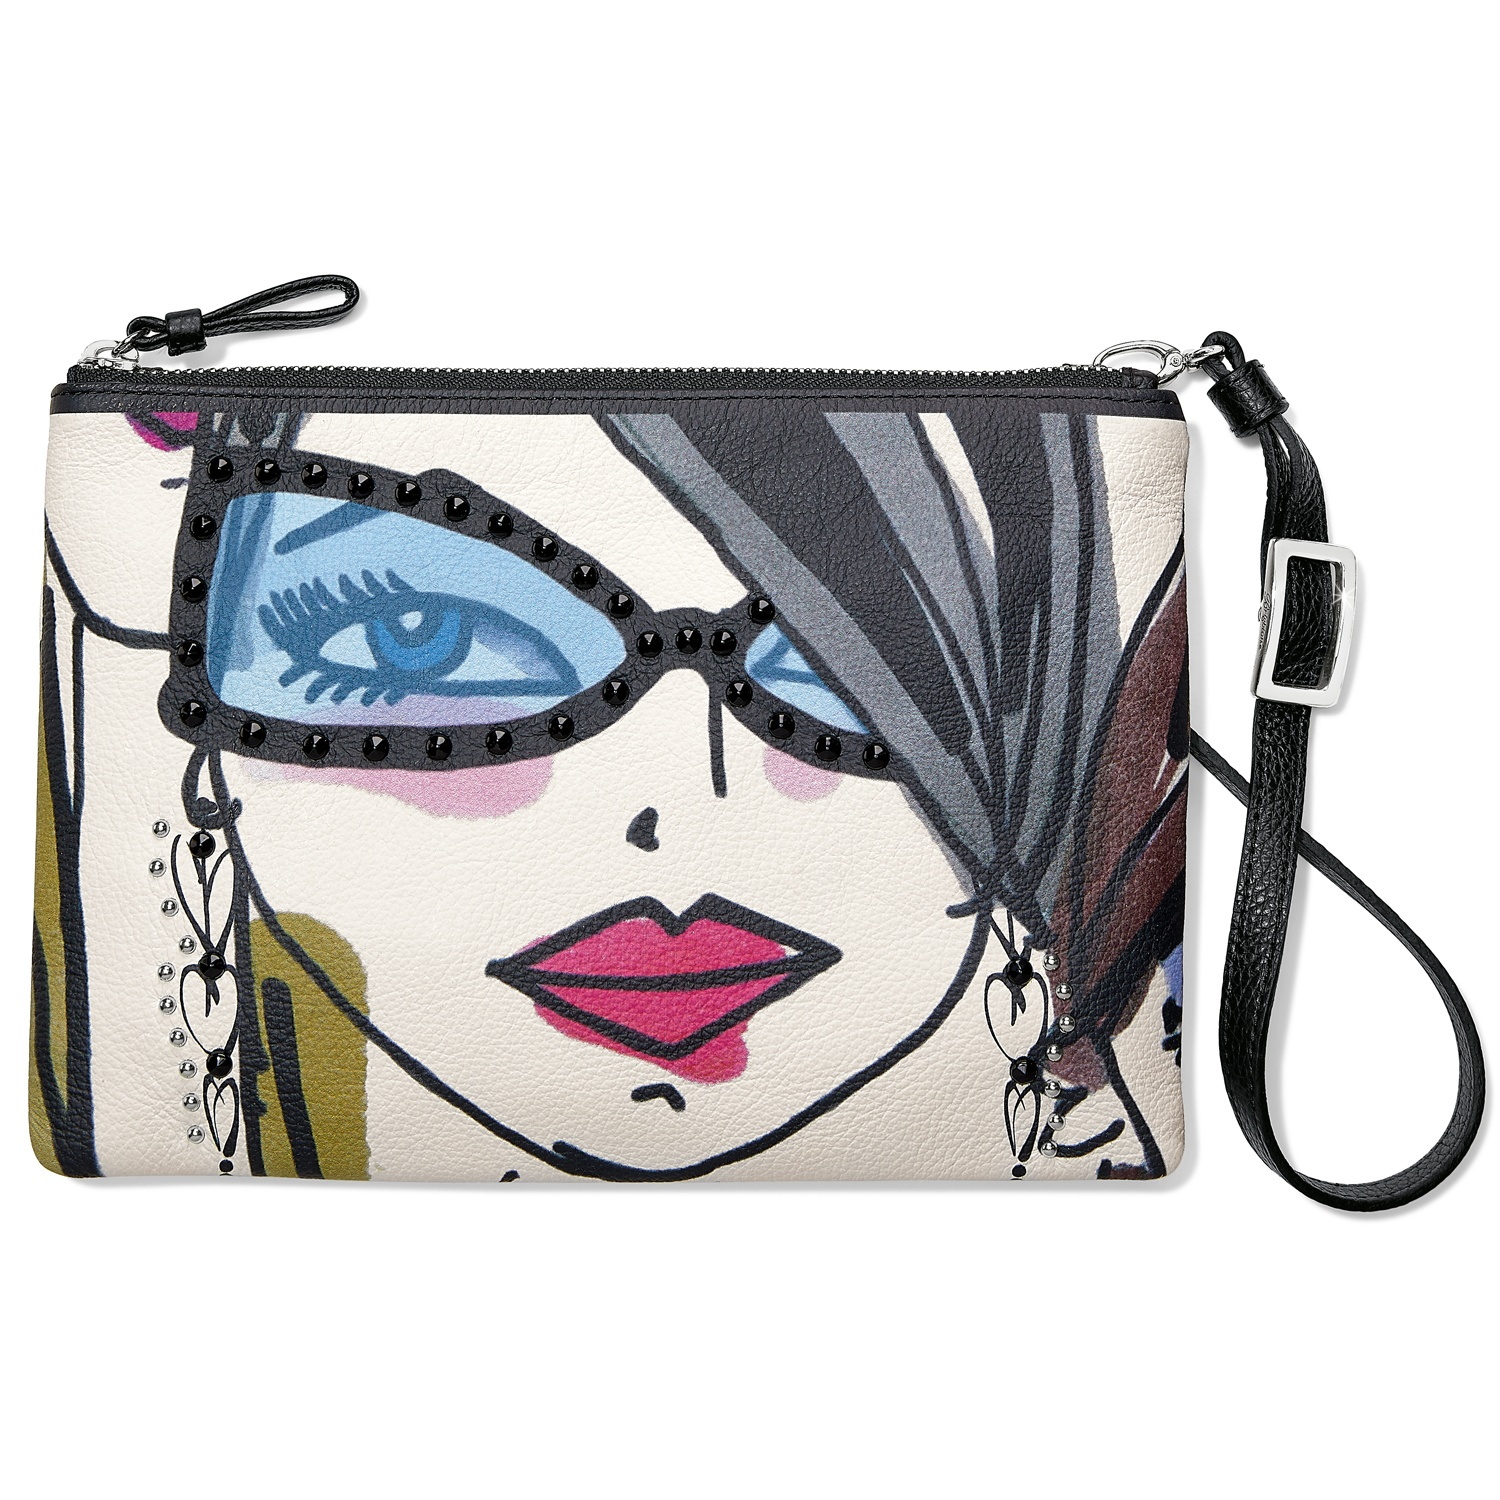 25055b57e2 Fashionista Downtown Girls Large Cross Body Crossbodies